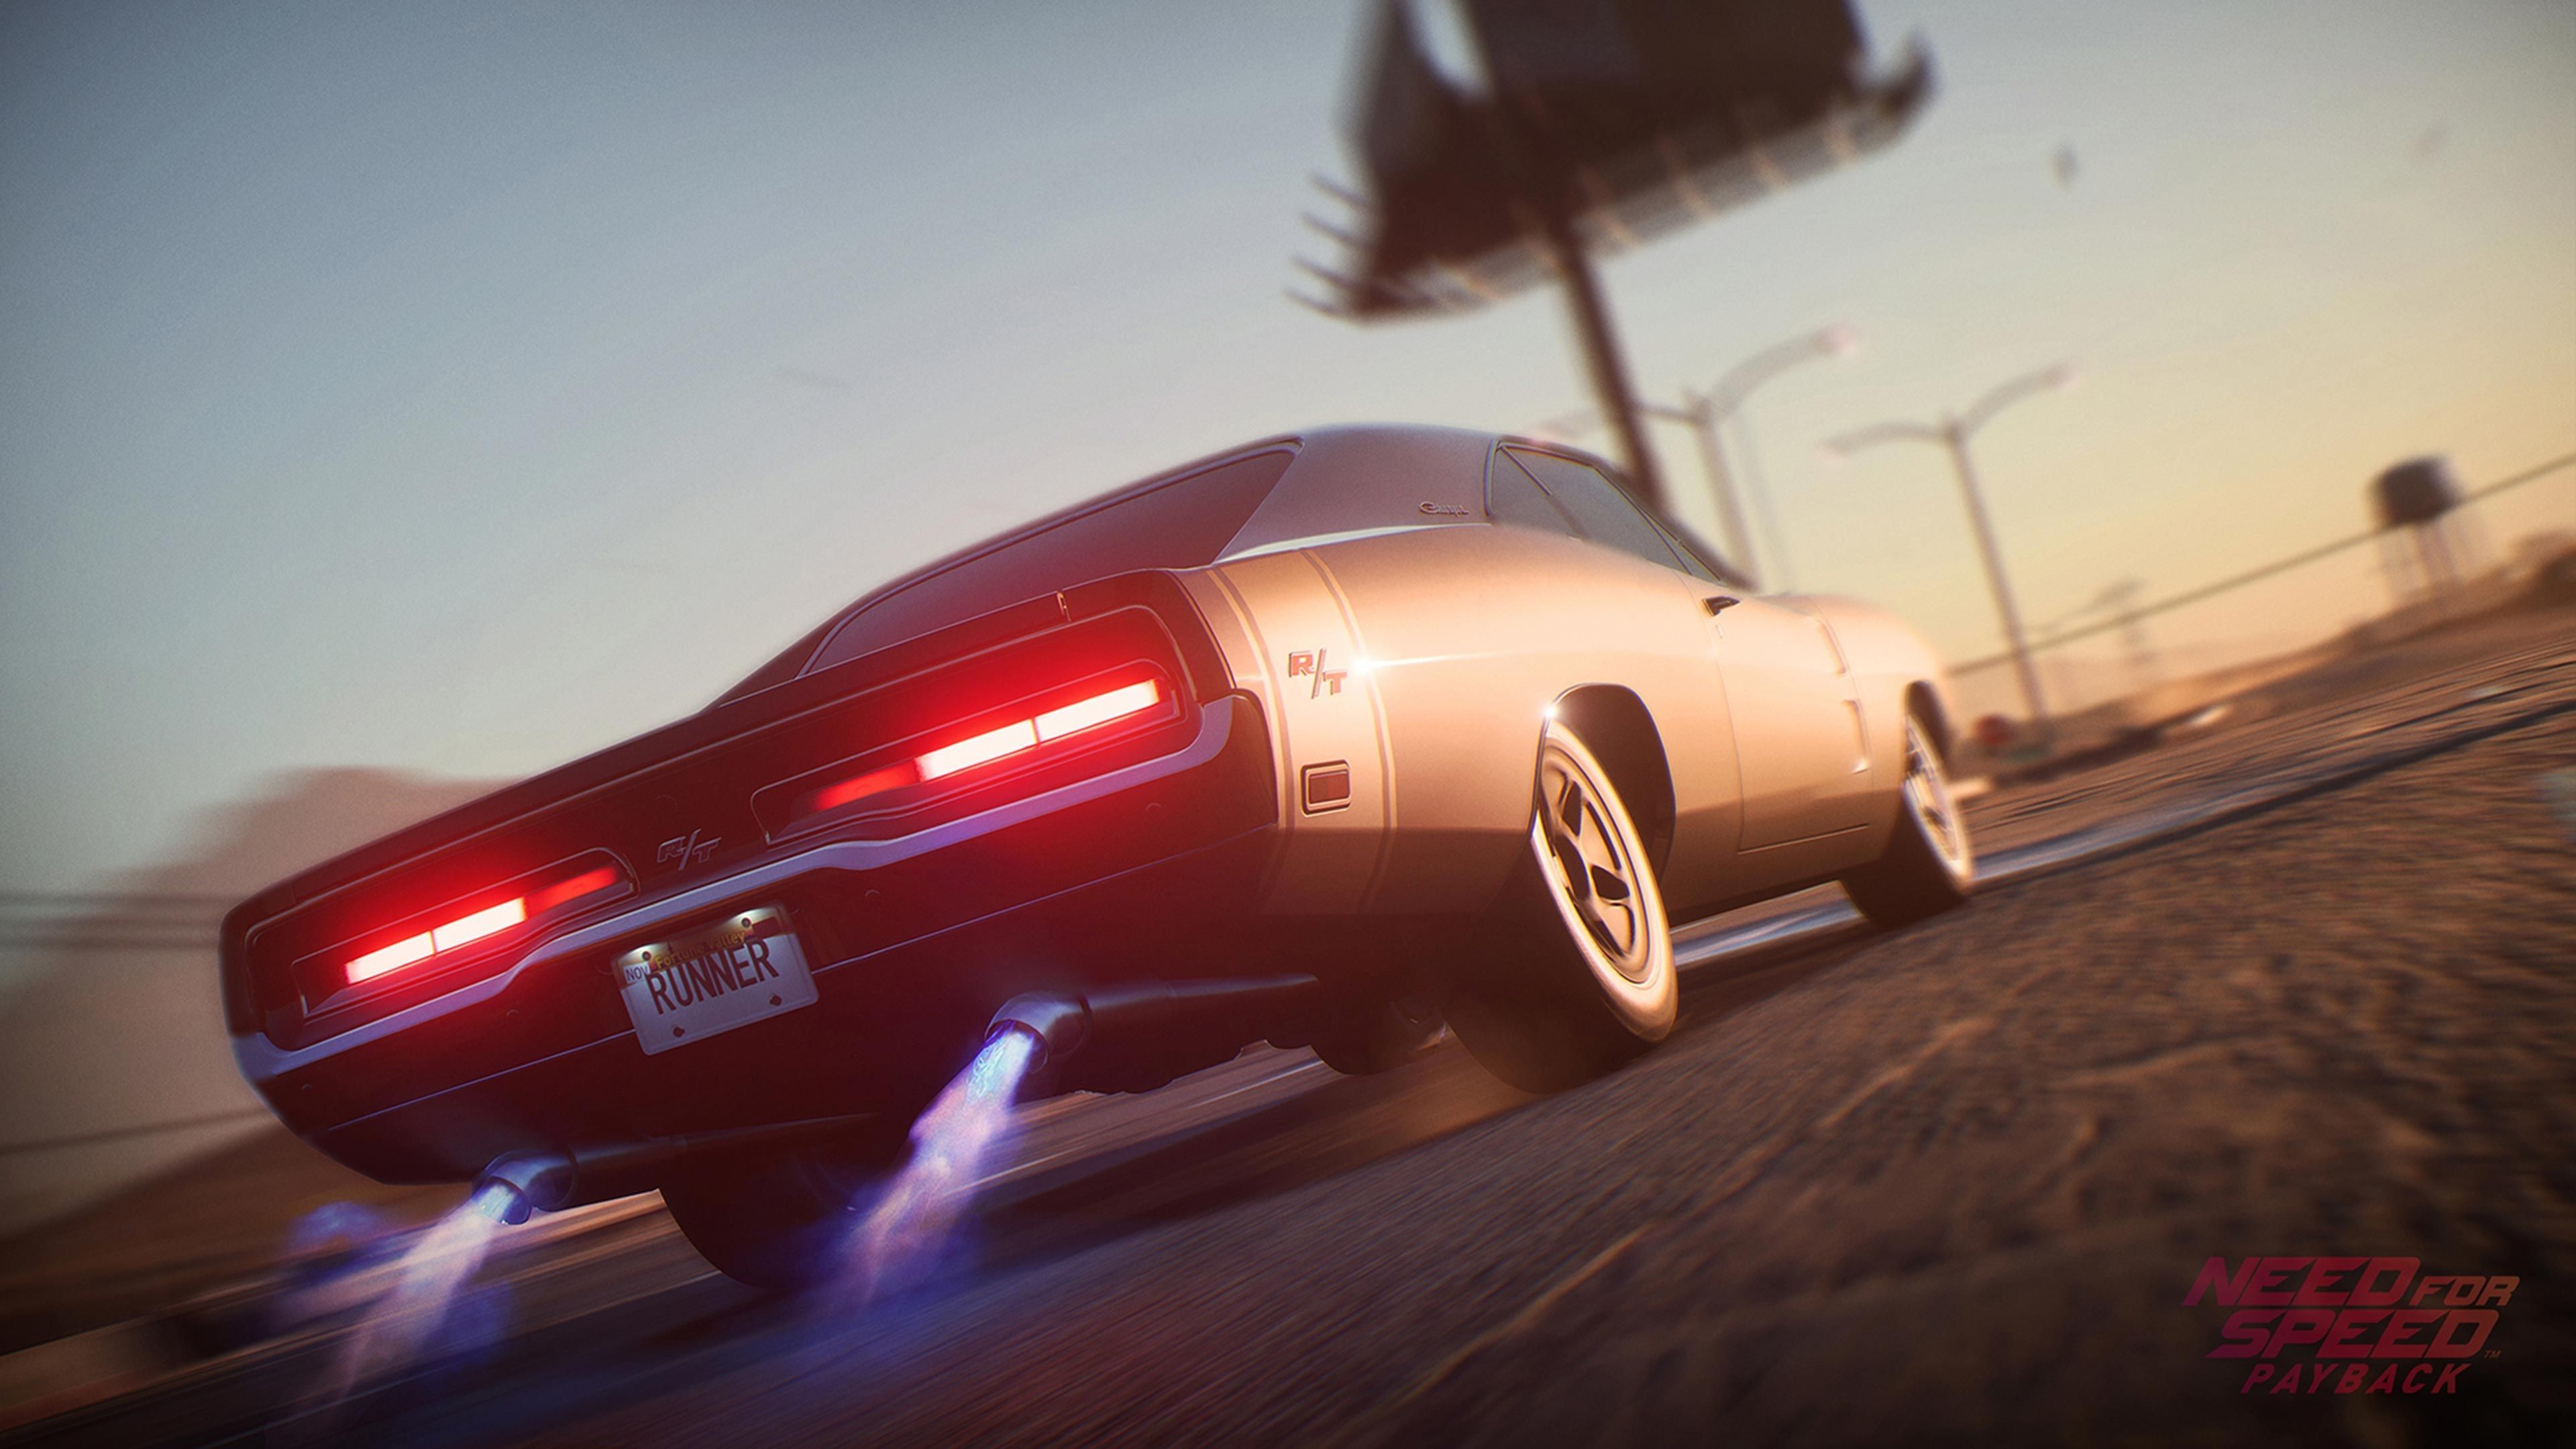 3840x2160 Need For Speed Payback 4k Free Full Hd Wallpaper Need